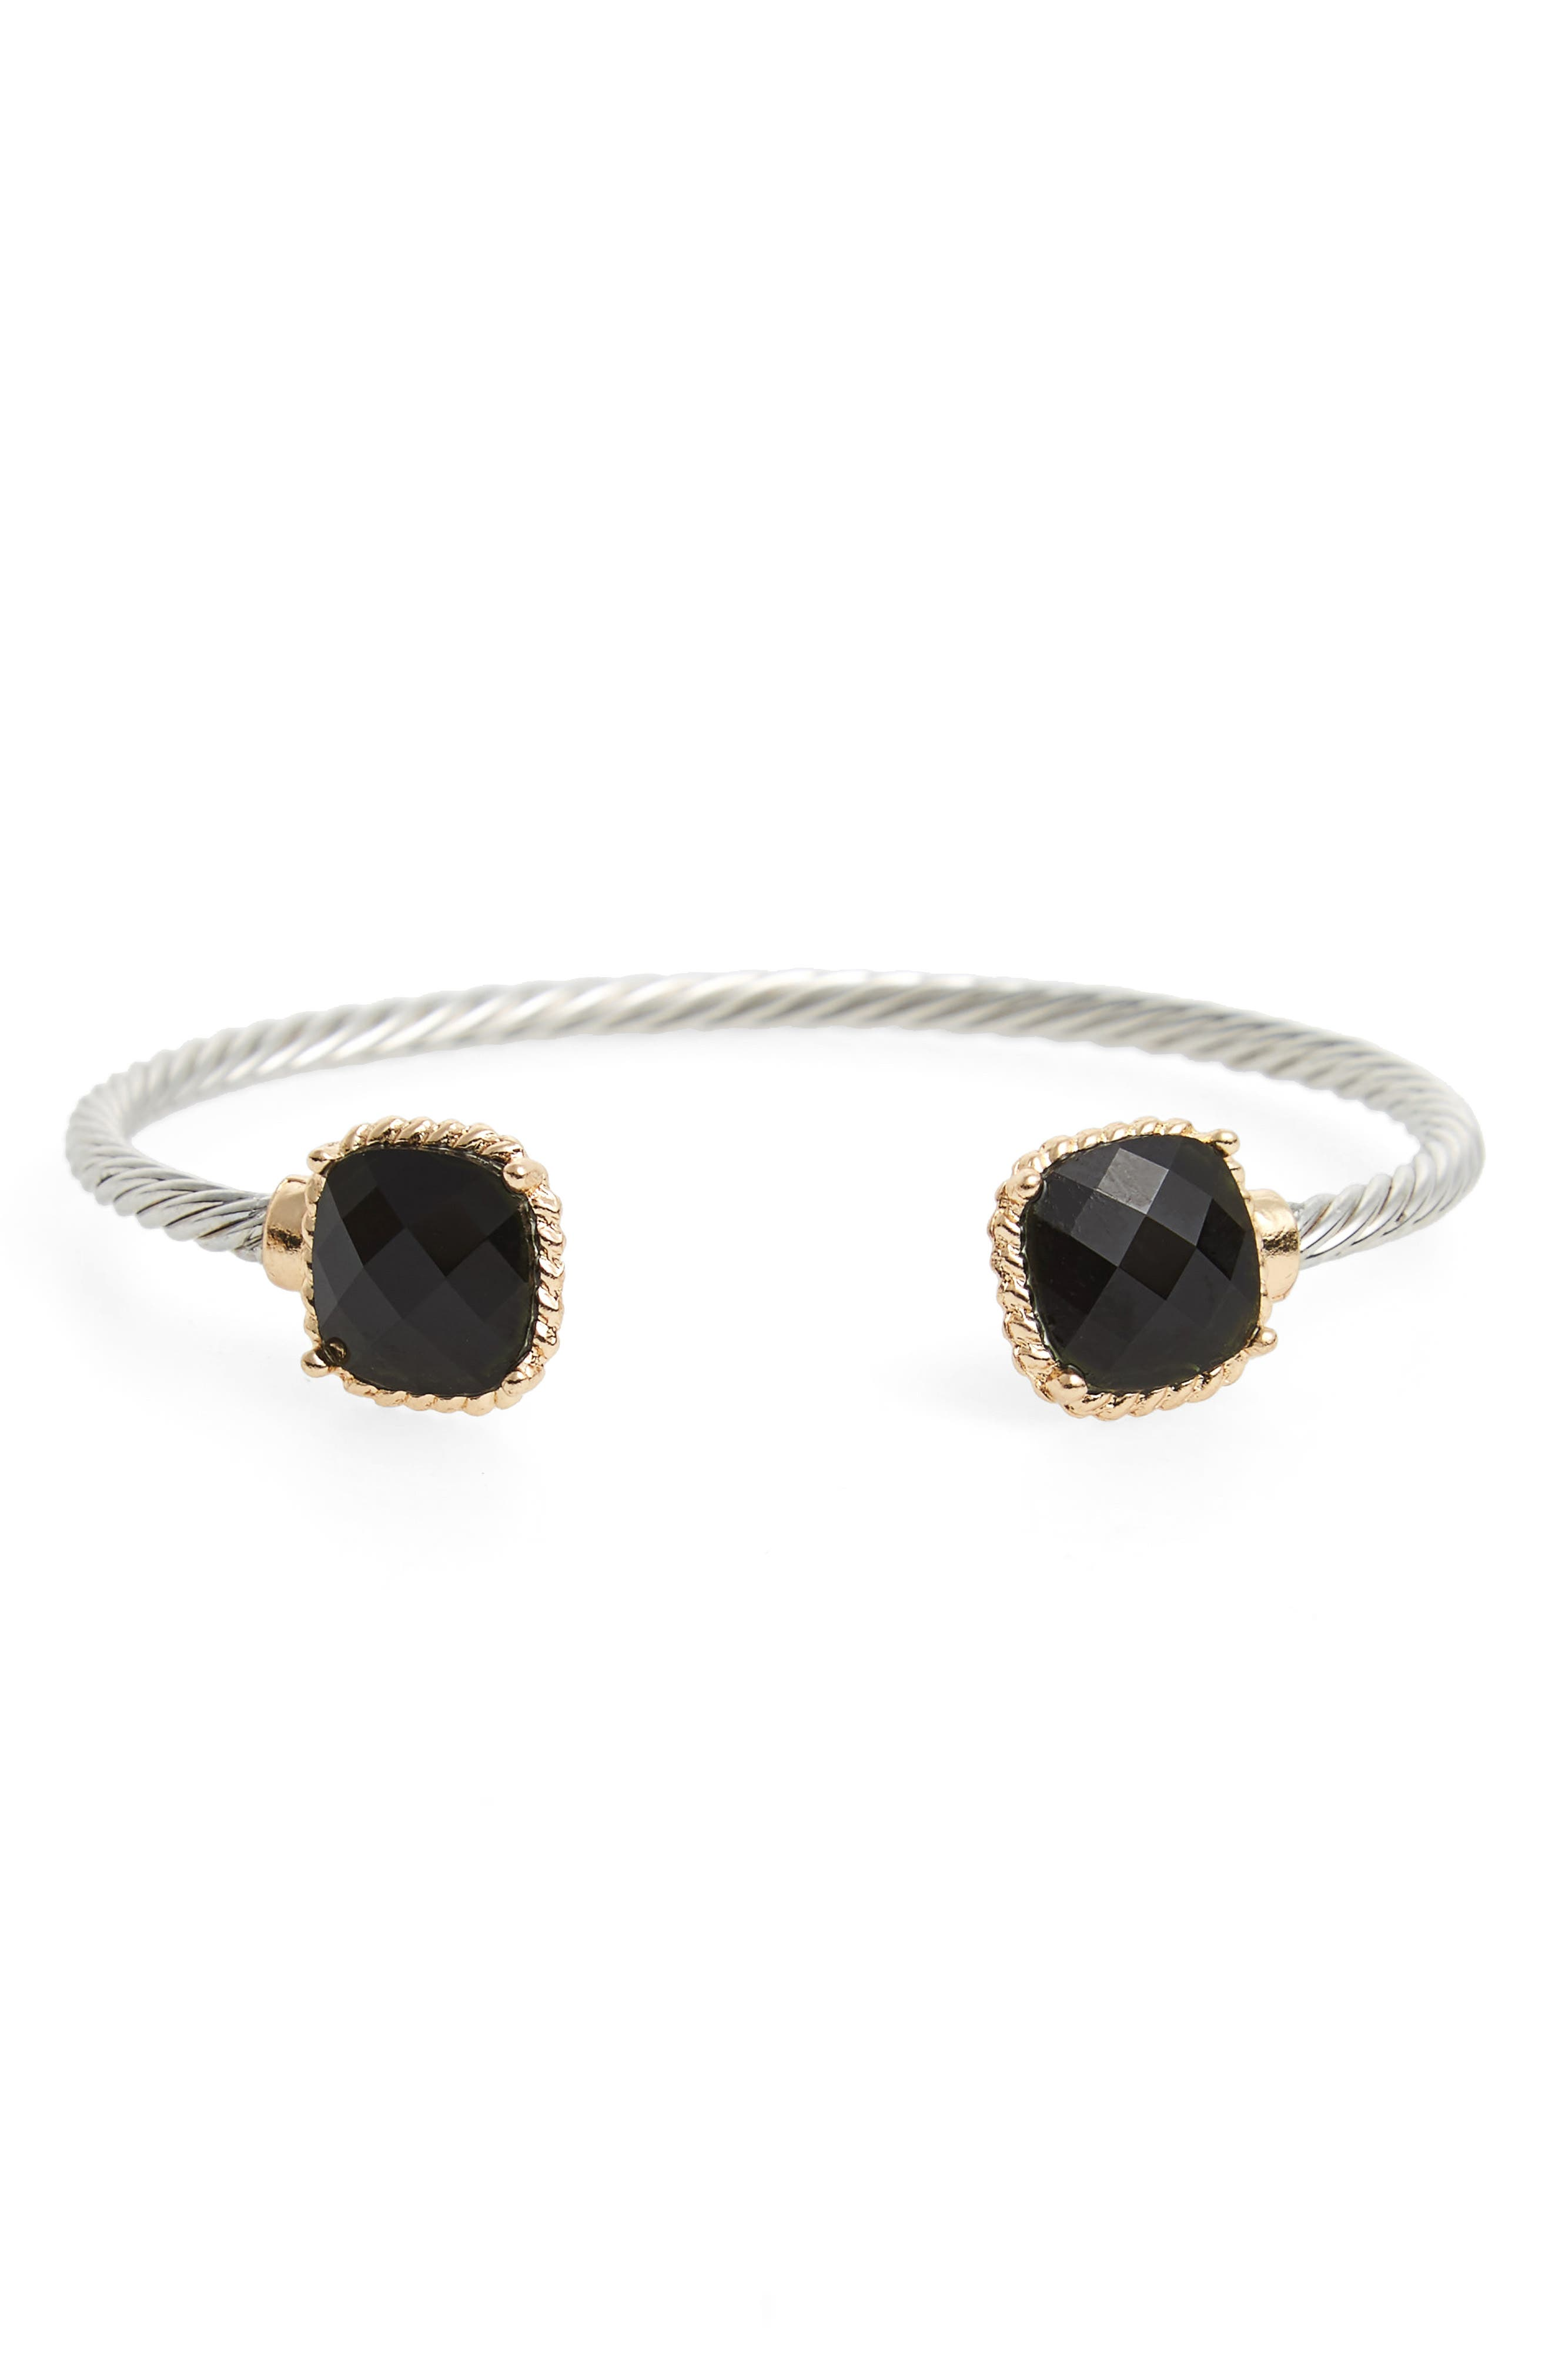 Thin Cable Stone Cuff,                             Main thumbnail 1, color,                             001